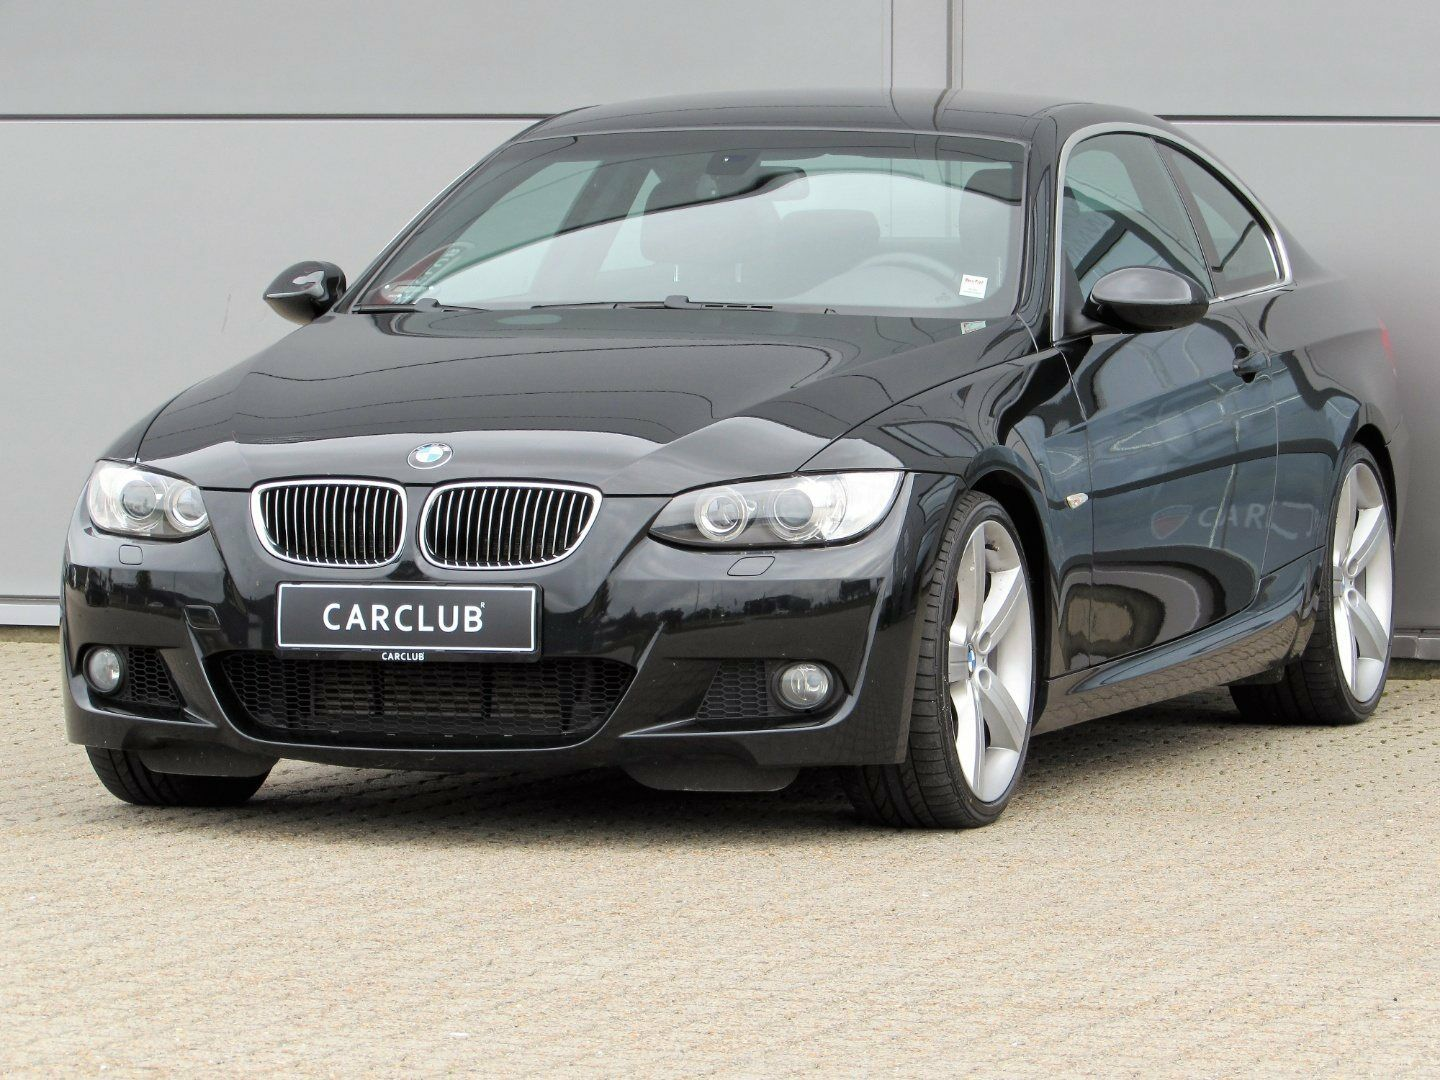 BMW 335i 3,0 Coupé Steptr. 2d - 249.900 kr.